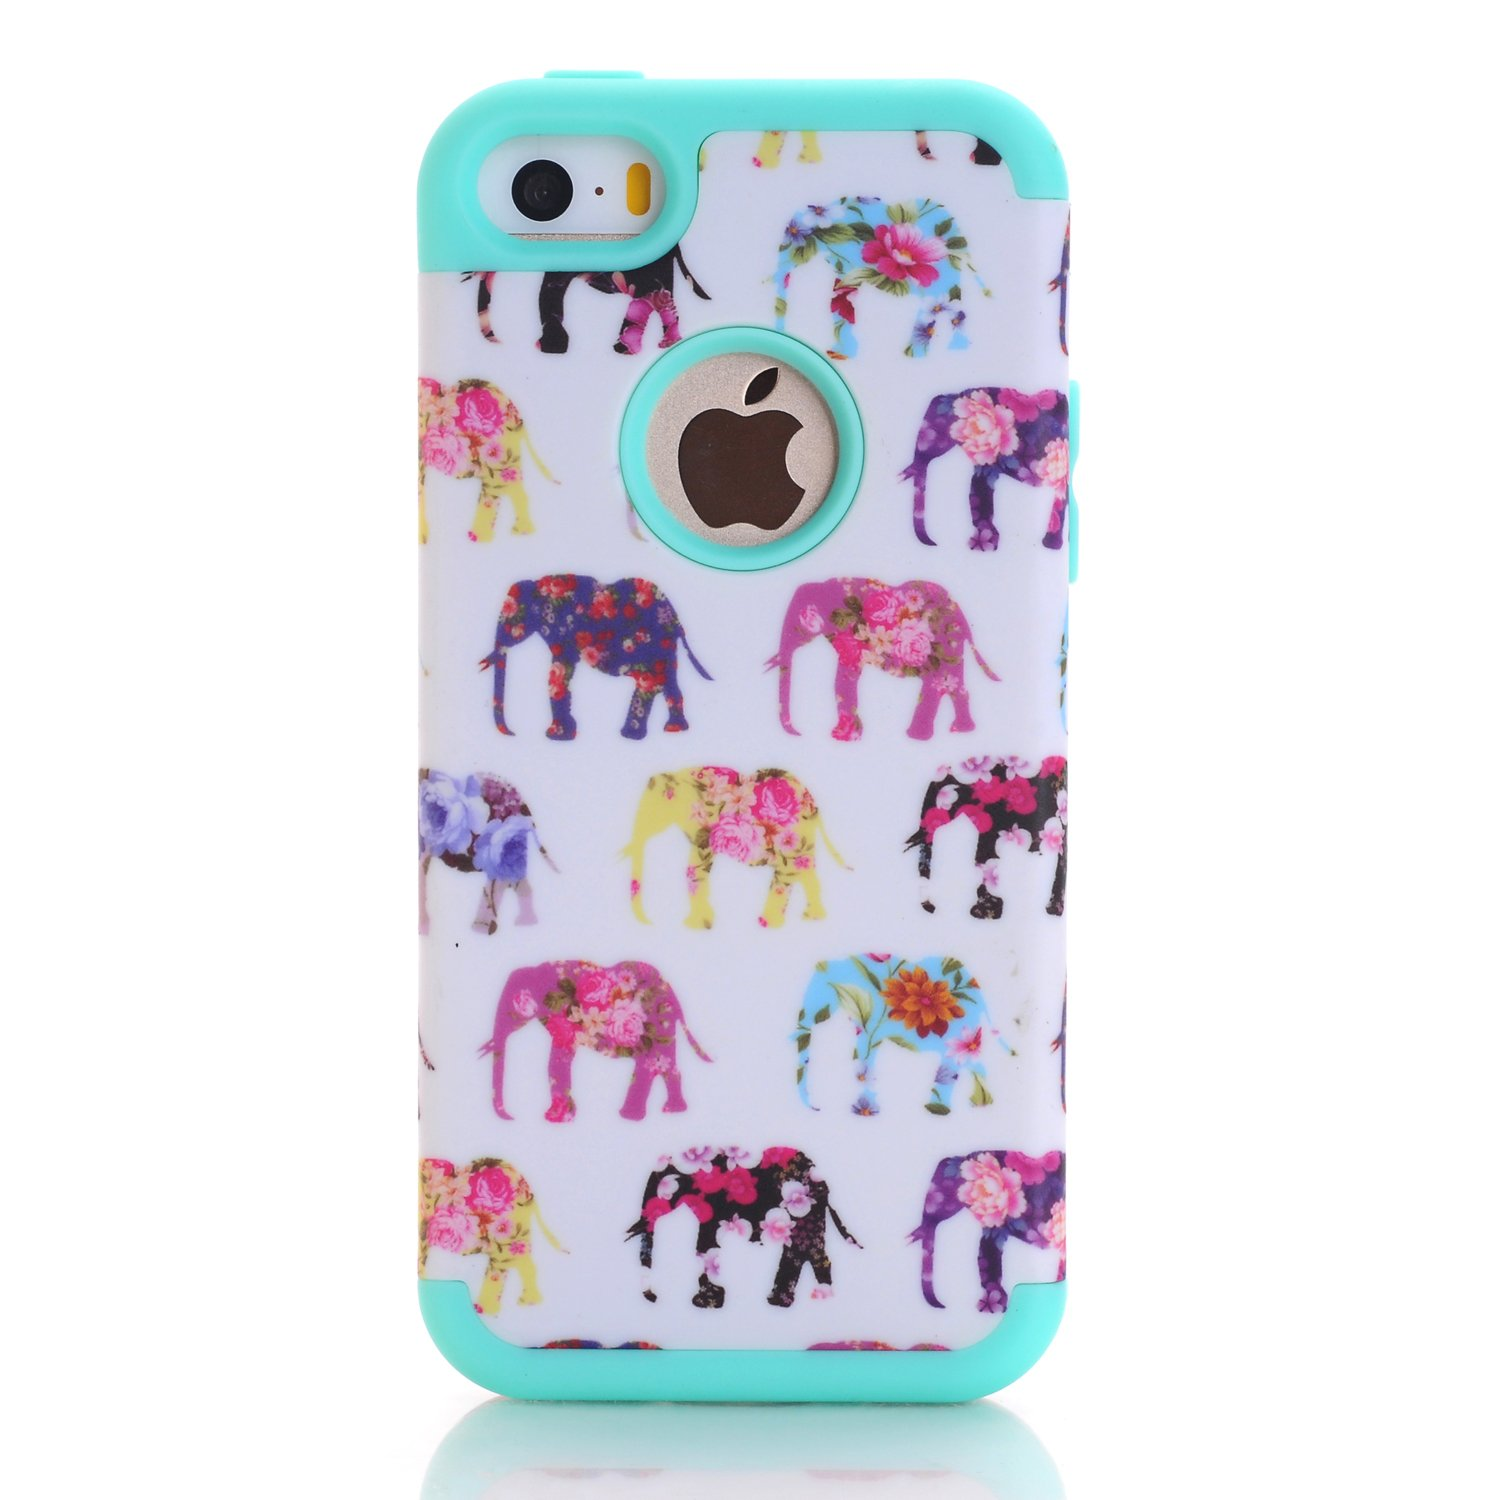 iPhone SE Case, Firefish Hybrid (Hard PC+ Soft Silicone) (Elephant Design) Comprehensive Protection Impact Absorbing (Detachable) Cover for Apple iPhone SE/5/5S( Not for 5C)+One stylus-S-Blue